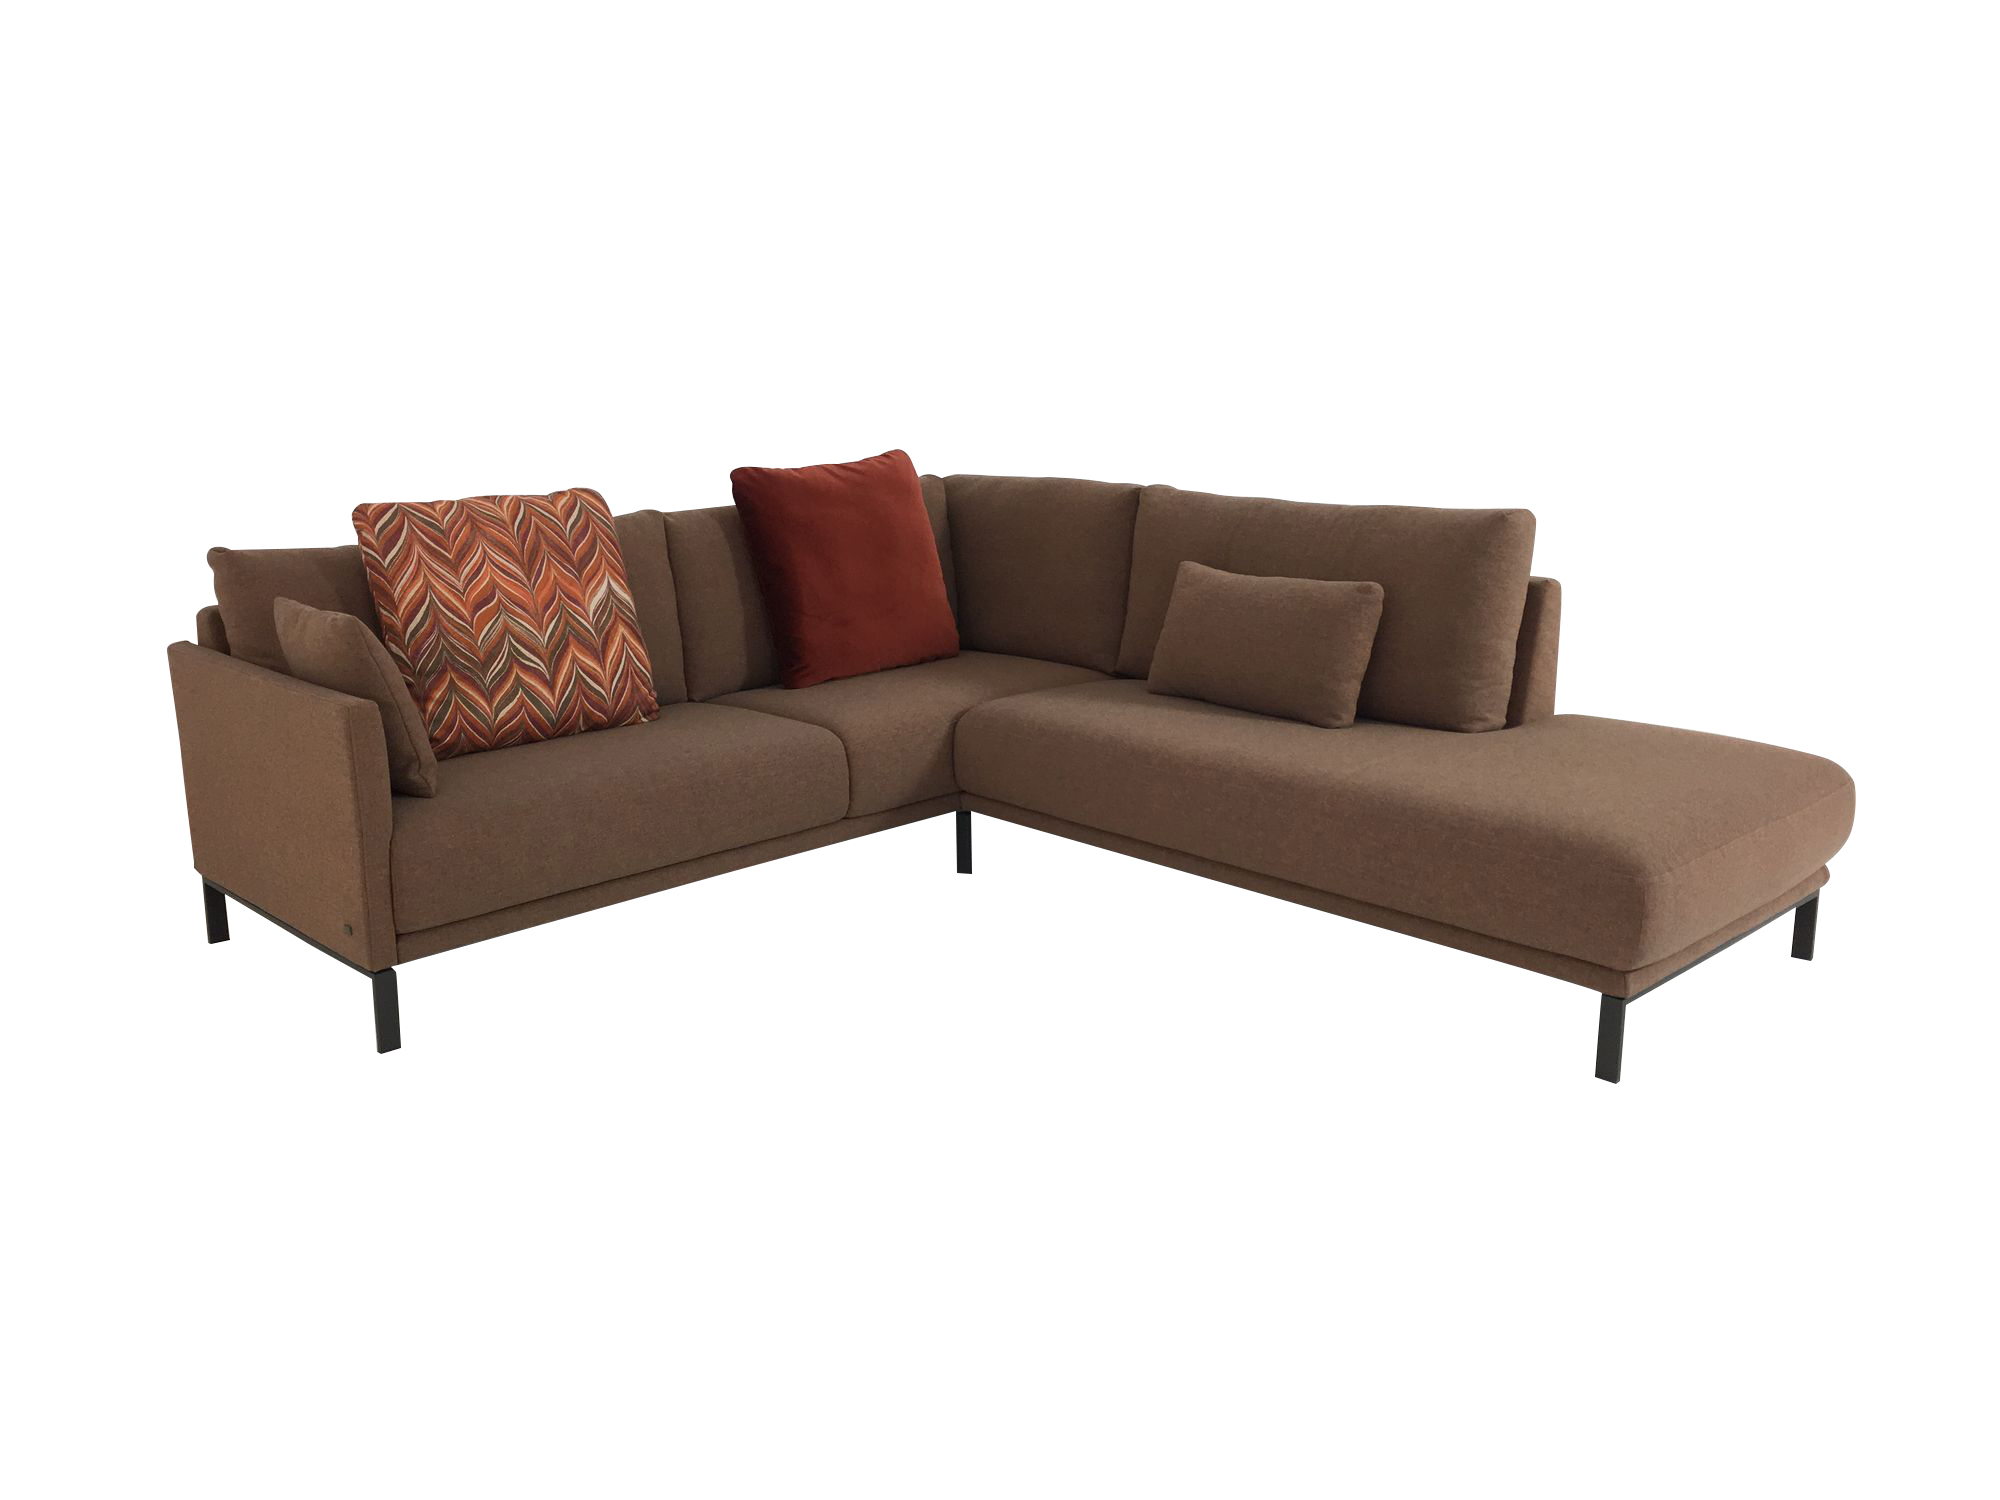 rolf benz cara ecksofa in stoff beige orange mit kompletter ausstattung an funktionen und kissen. Black Bedroom Furniture Sets. Home Design Ideas